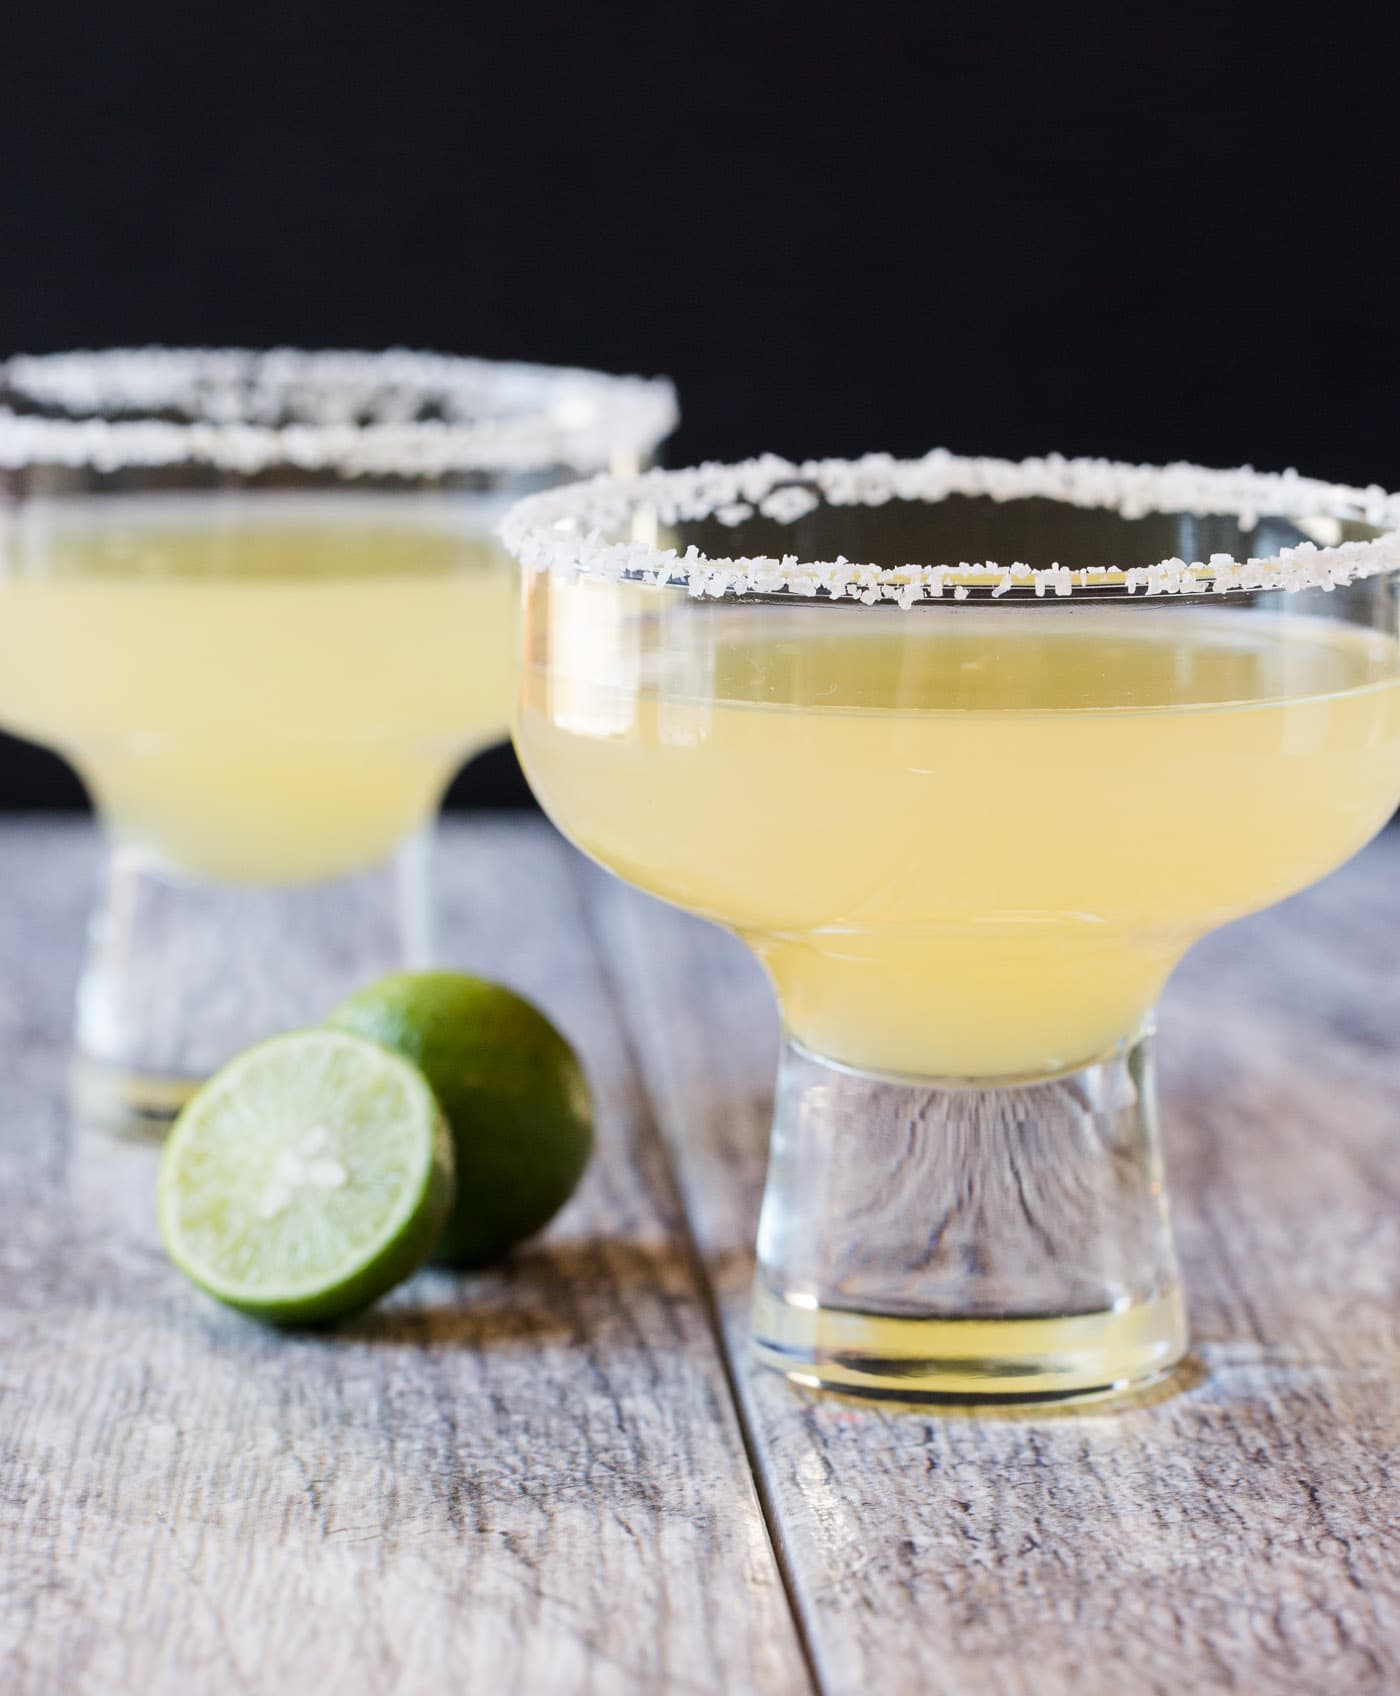 This Key Lime Margaritas recipe will bring the tropics to you with the perfectly balanced sweet and tart flavors!